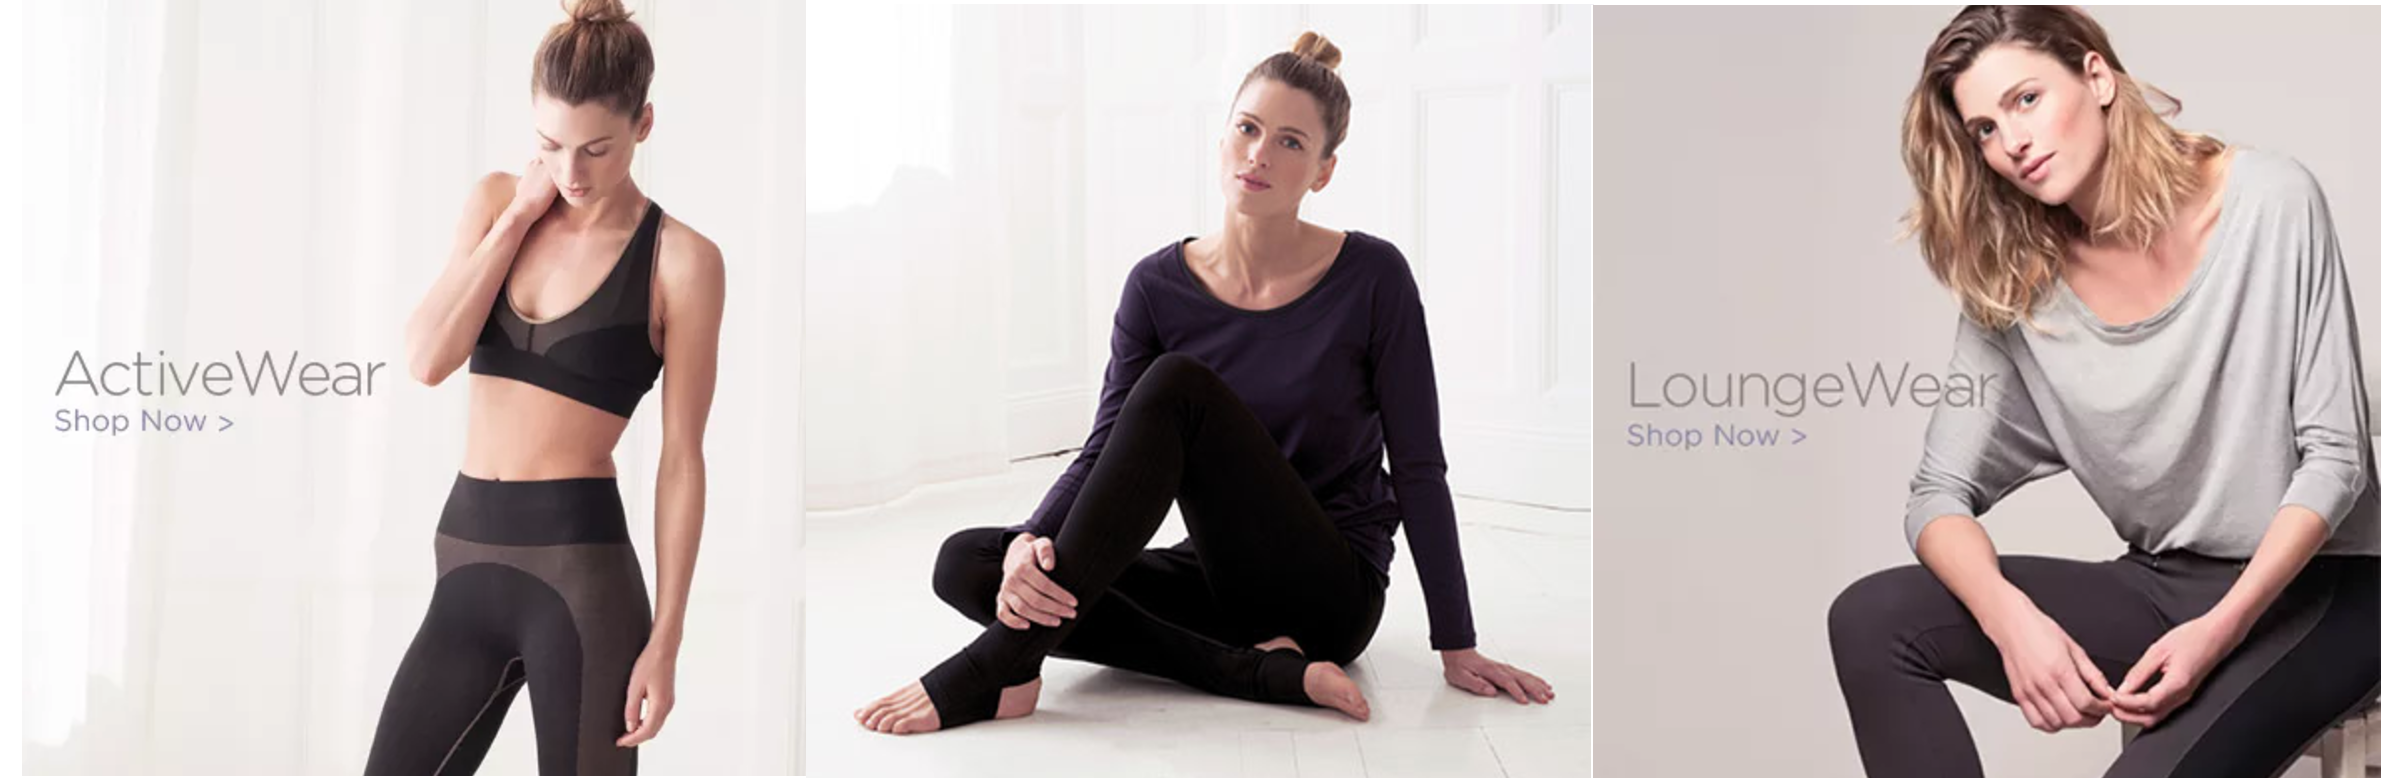 Wellicious Yoga and Pilates Clothing